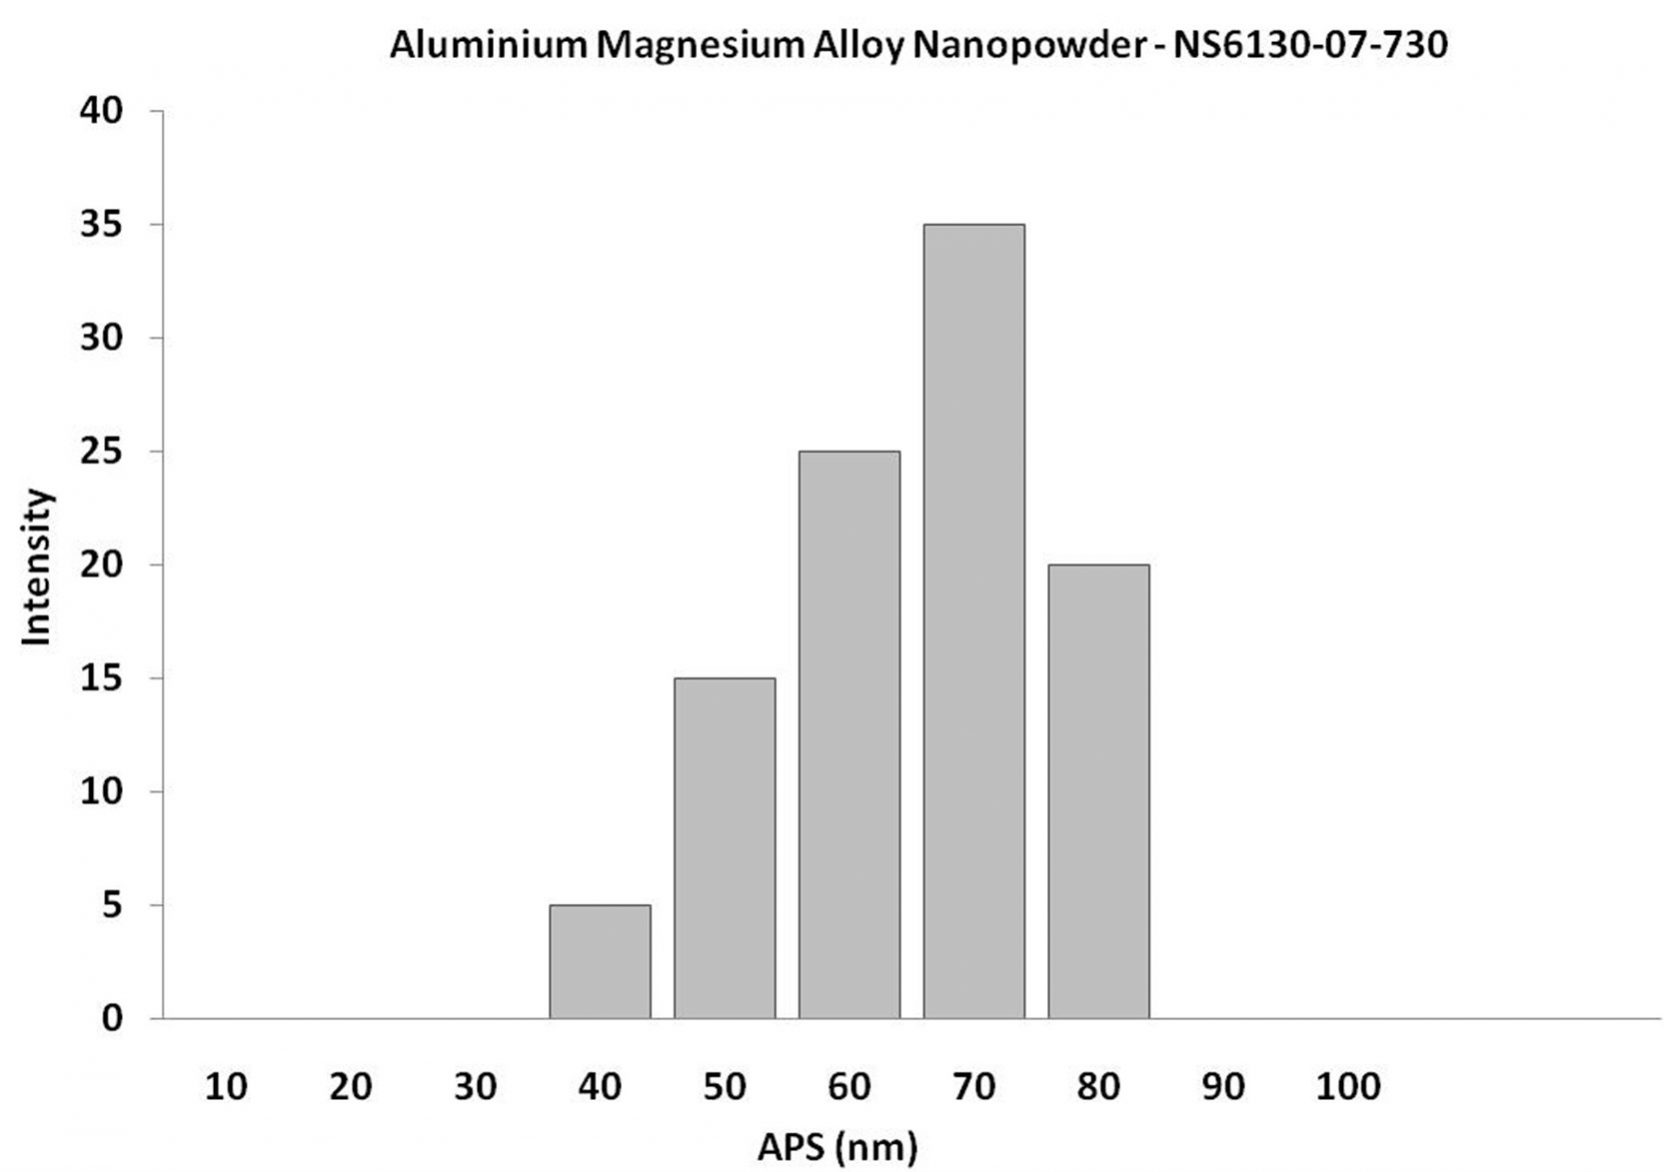 Particles Size Analysis -  Aluminium Magnesium Alloy Nanopowder